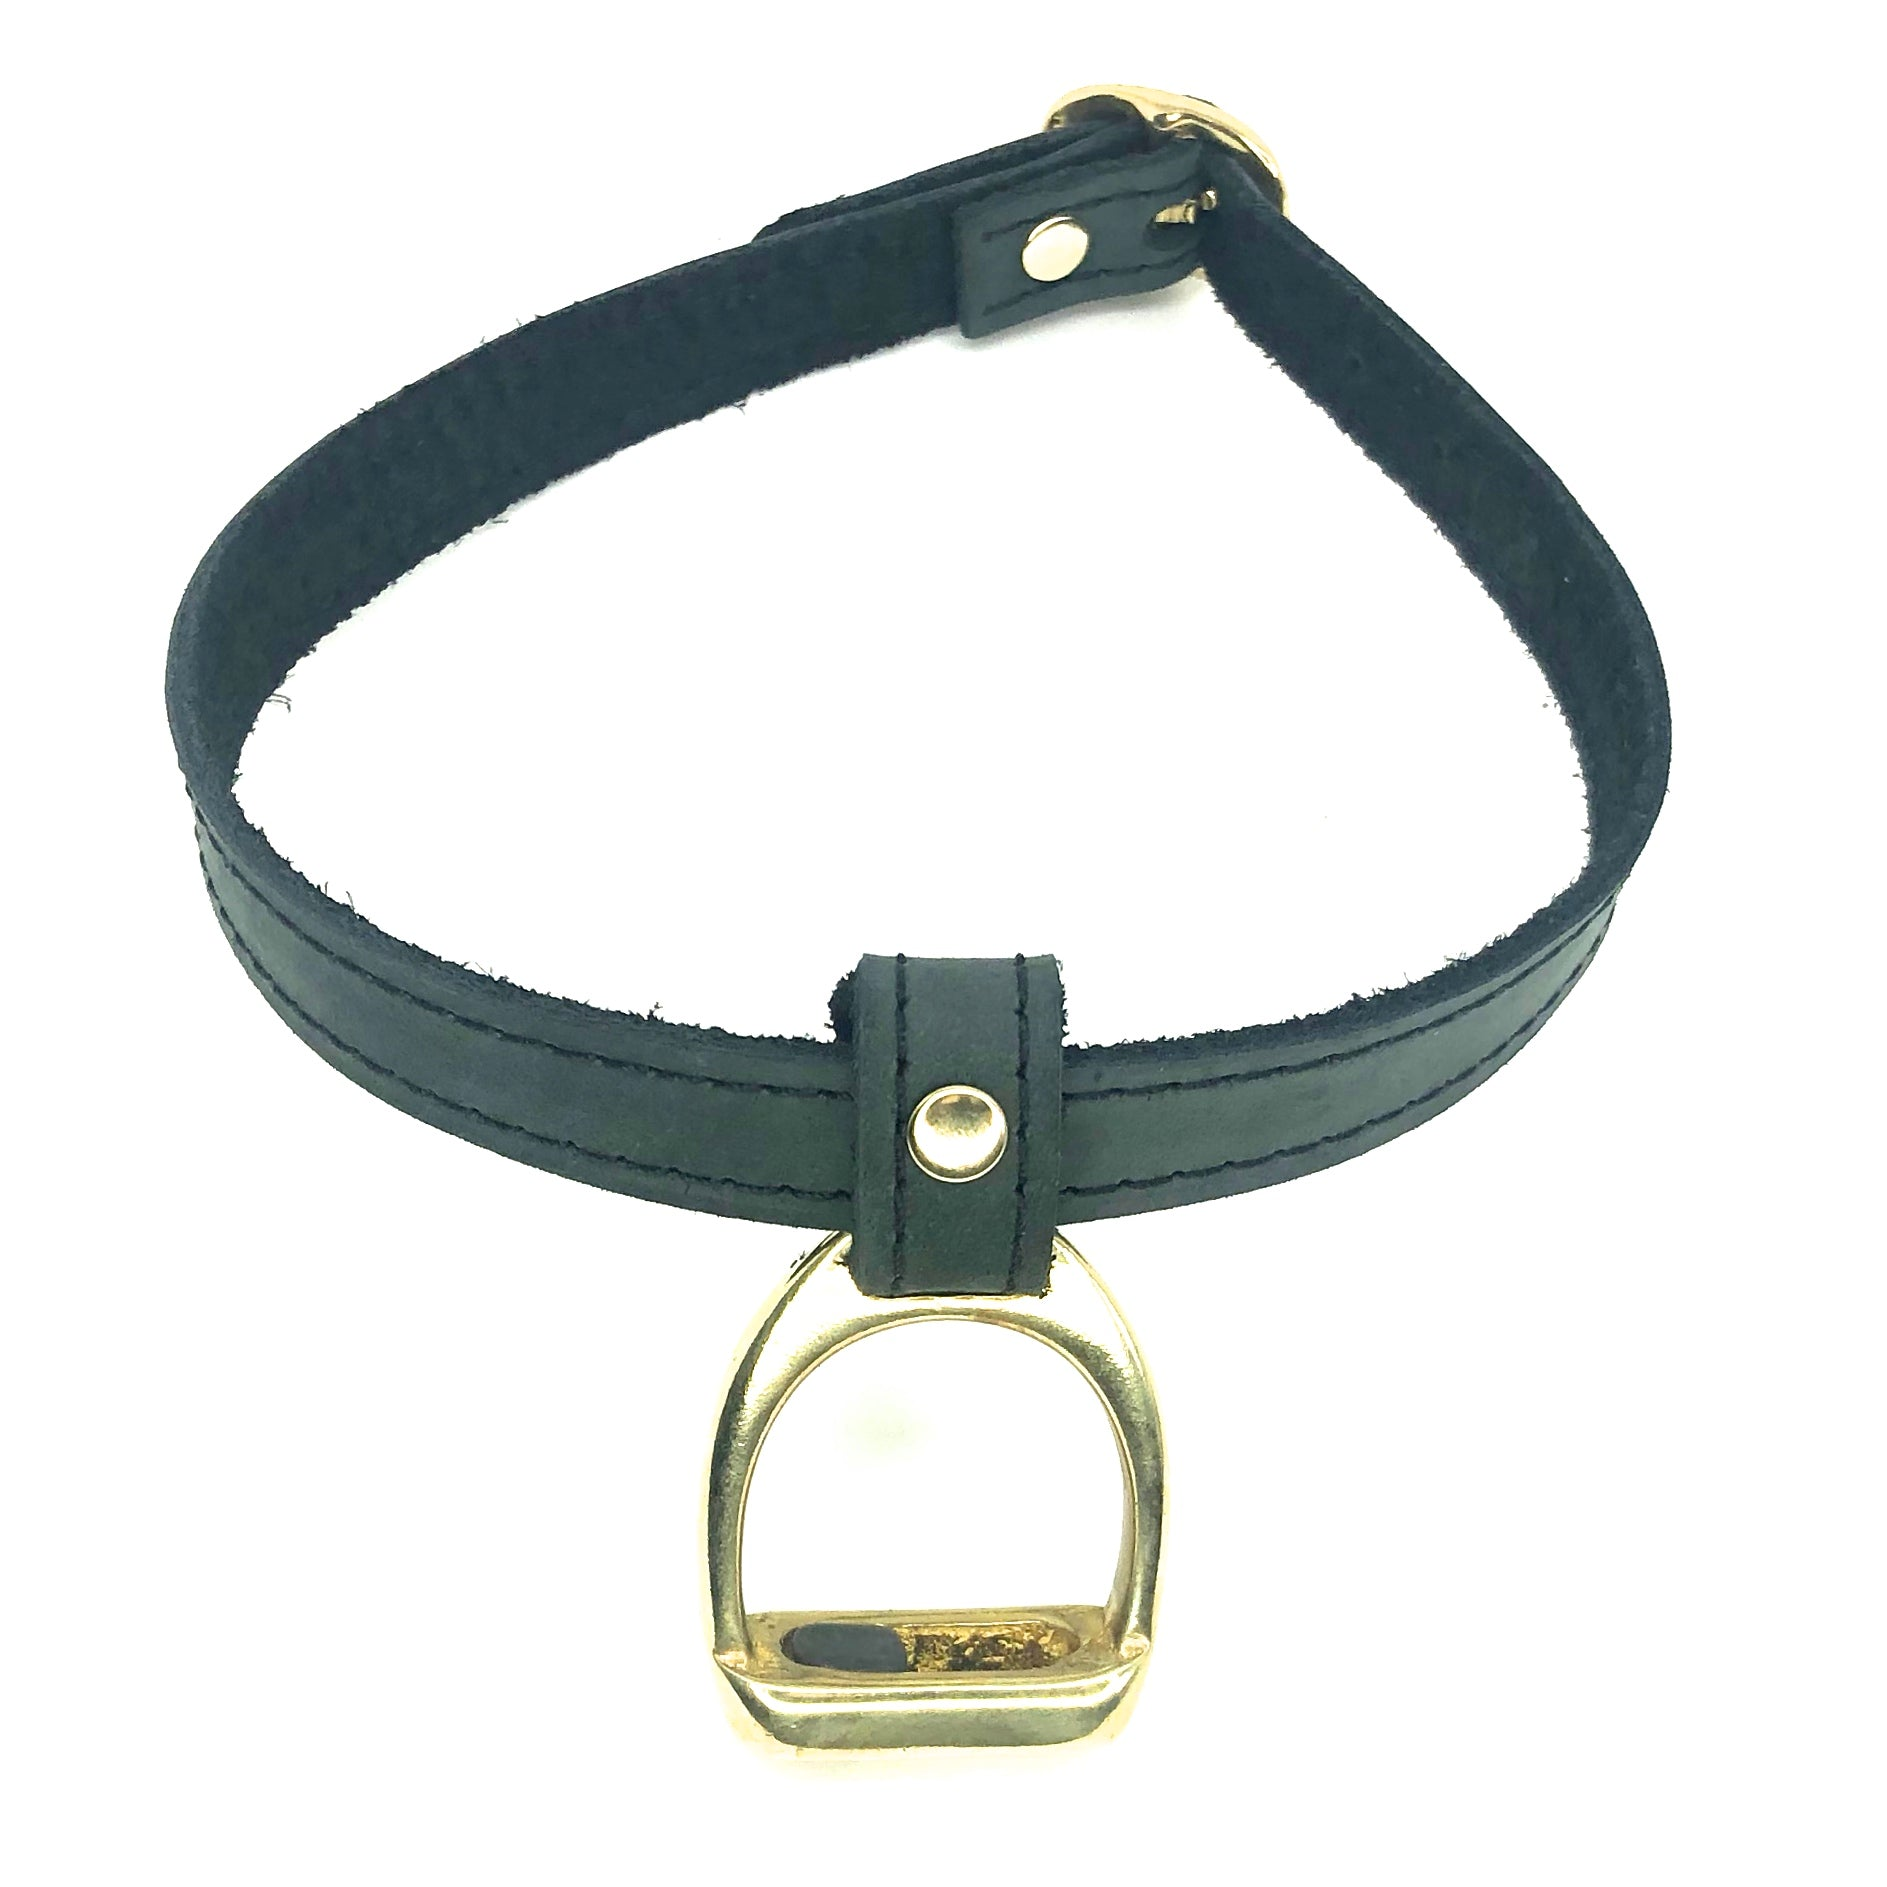 Nyet Jewelry stirrup choker by nyet jewelry.